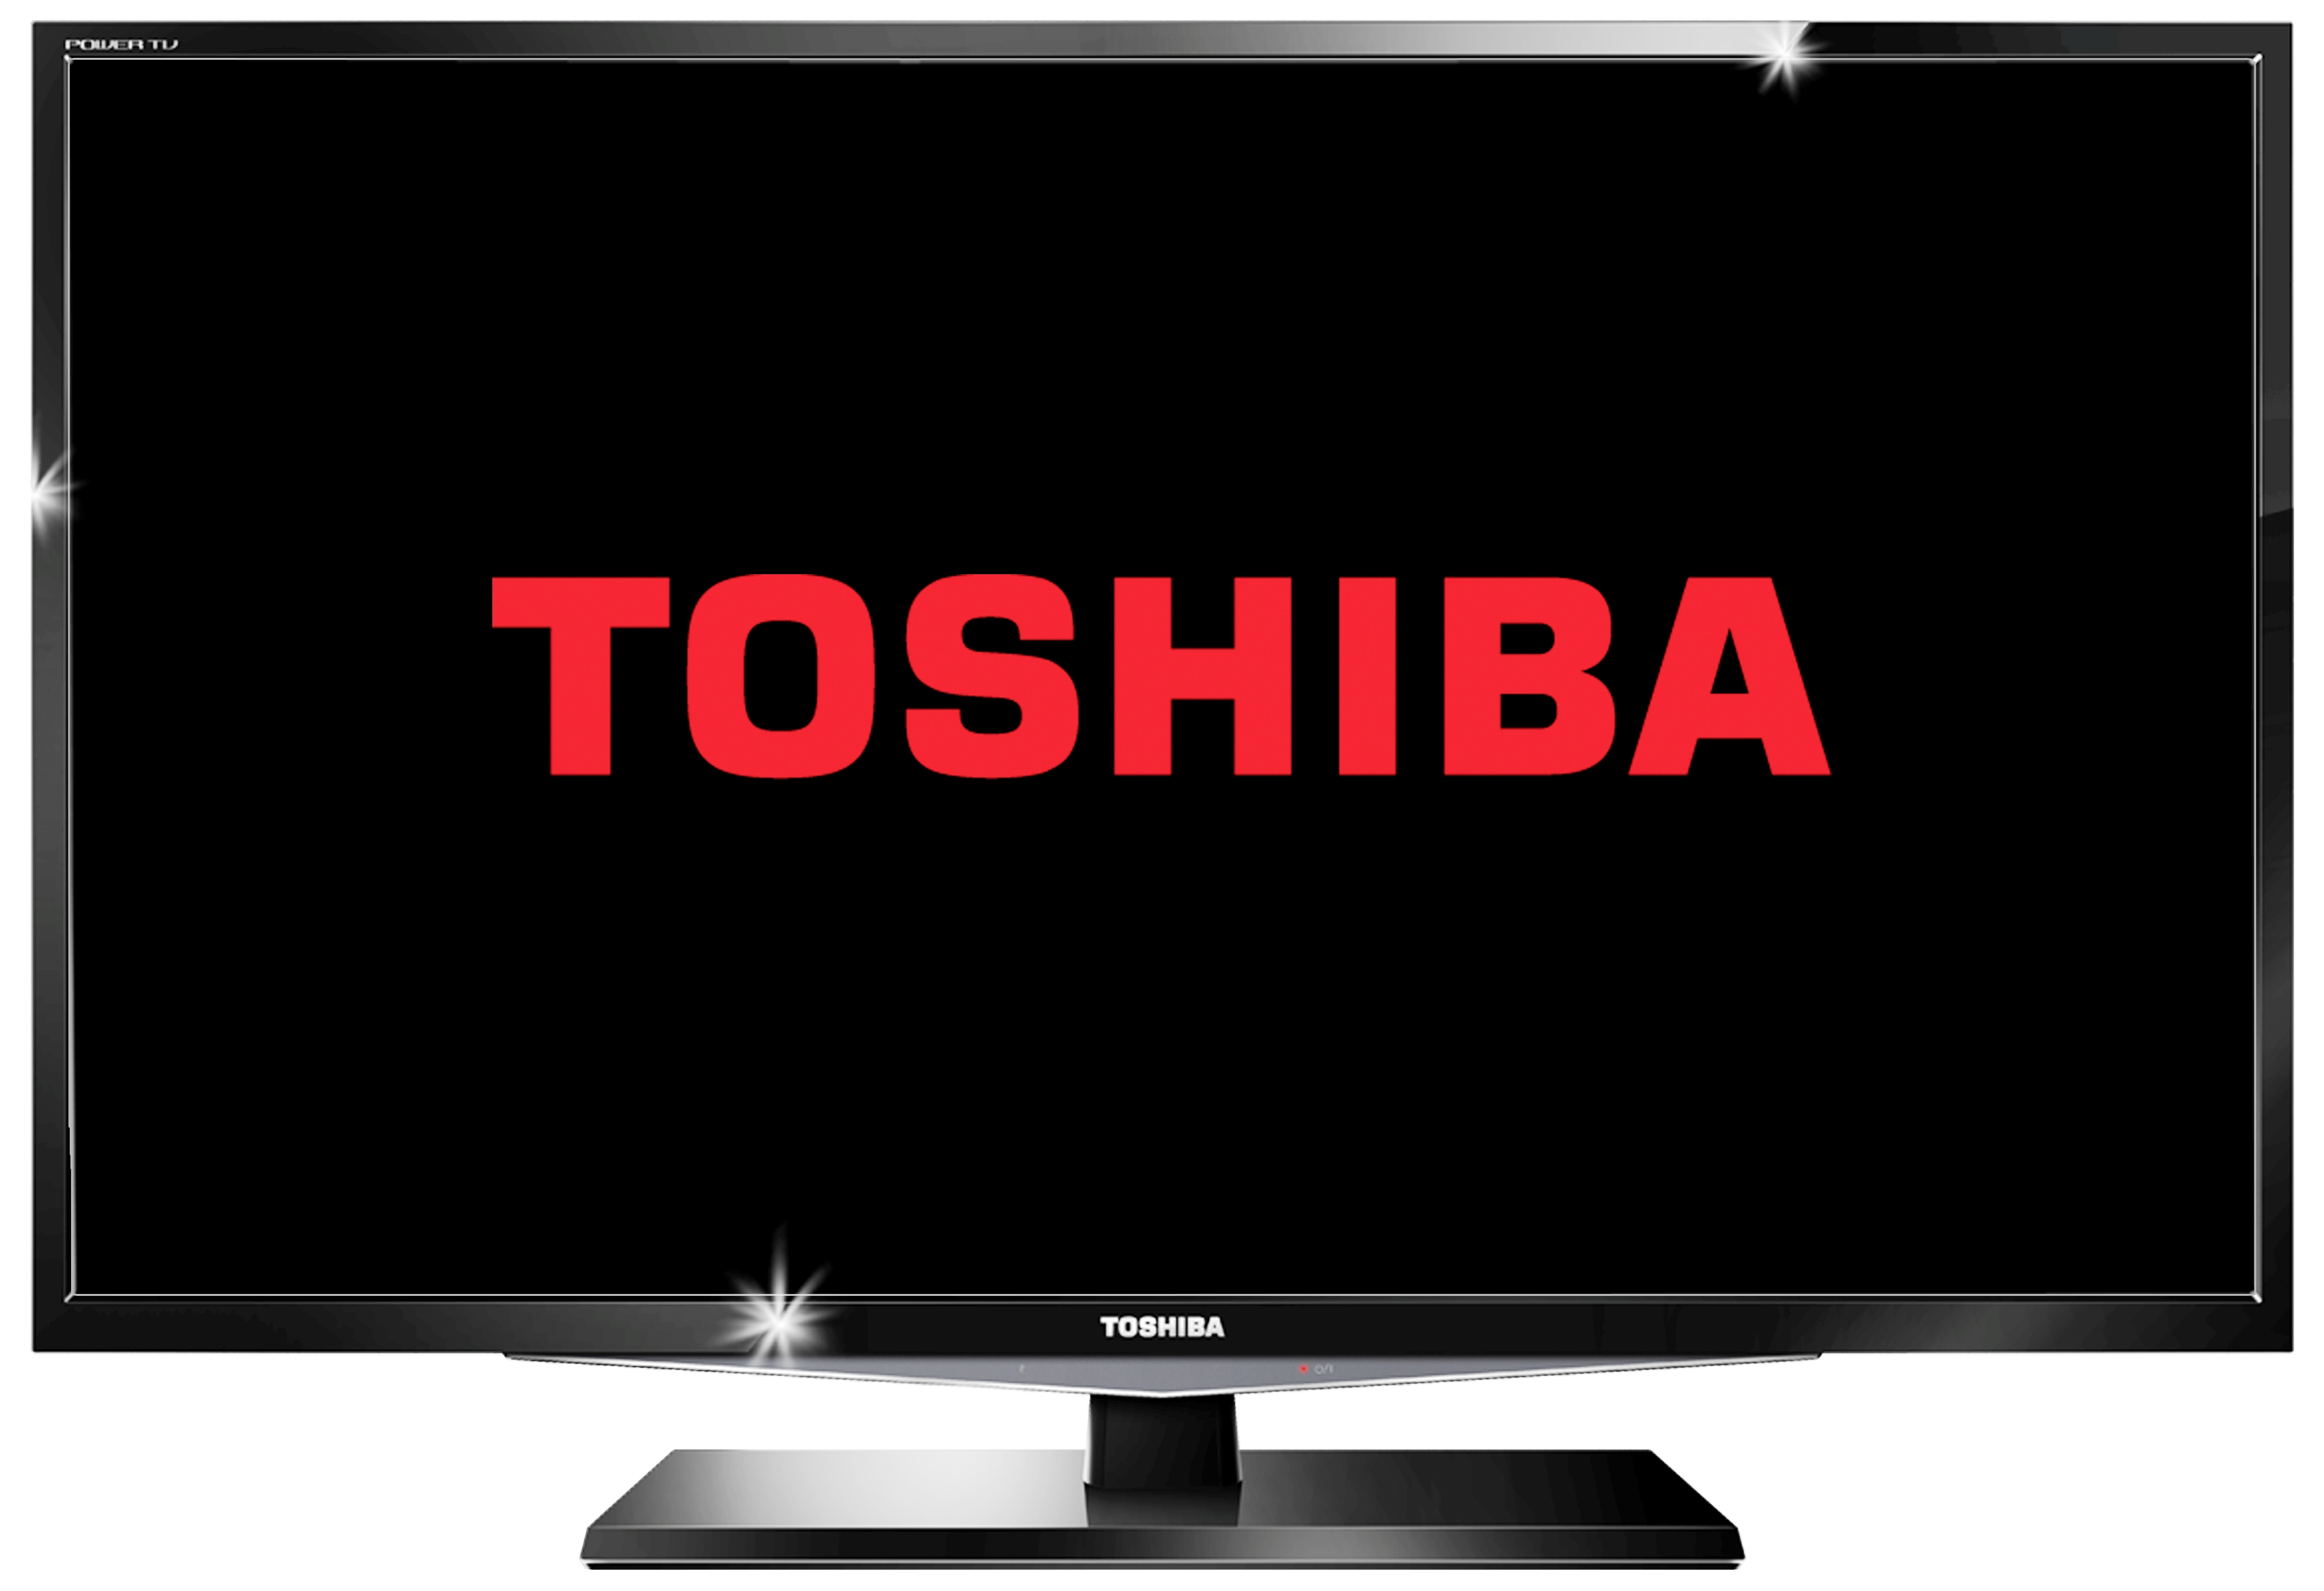 Toshiba Powers Up Its Power Tv Line Up With The Launch Of The Stylishly Designed Ps 20 Led Tv